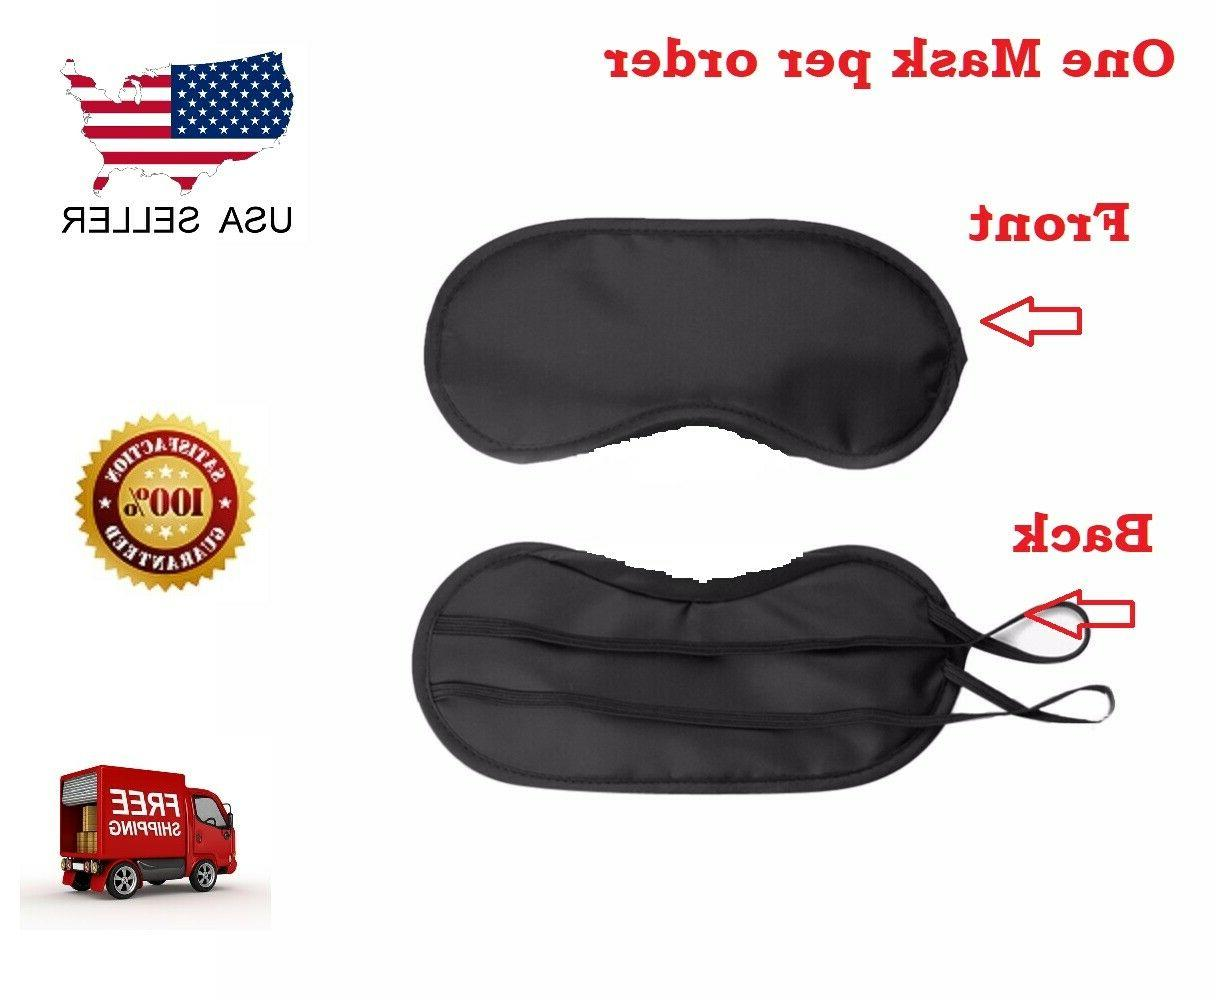 Travel Eye Mask Sleep Soft Shade Cover Rest Relax Sleeping B